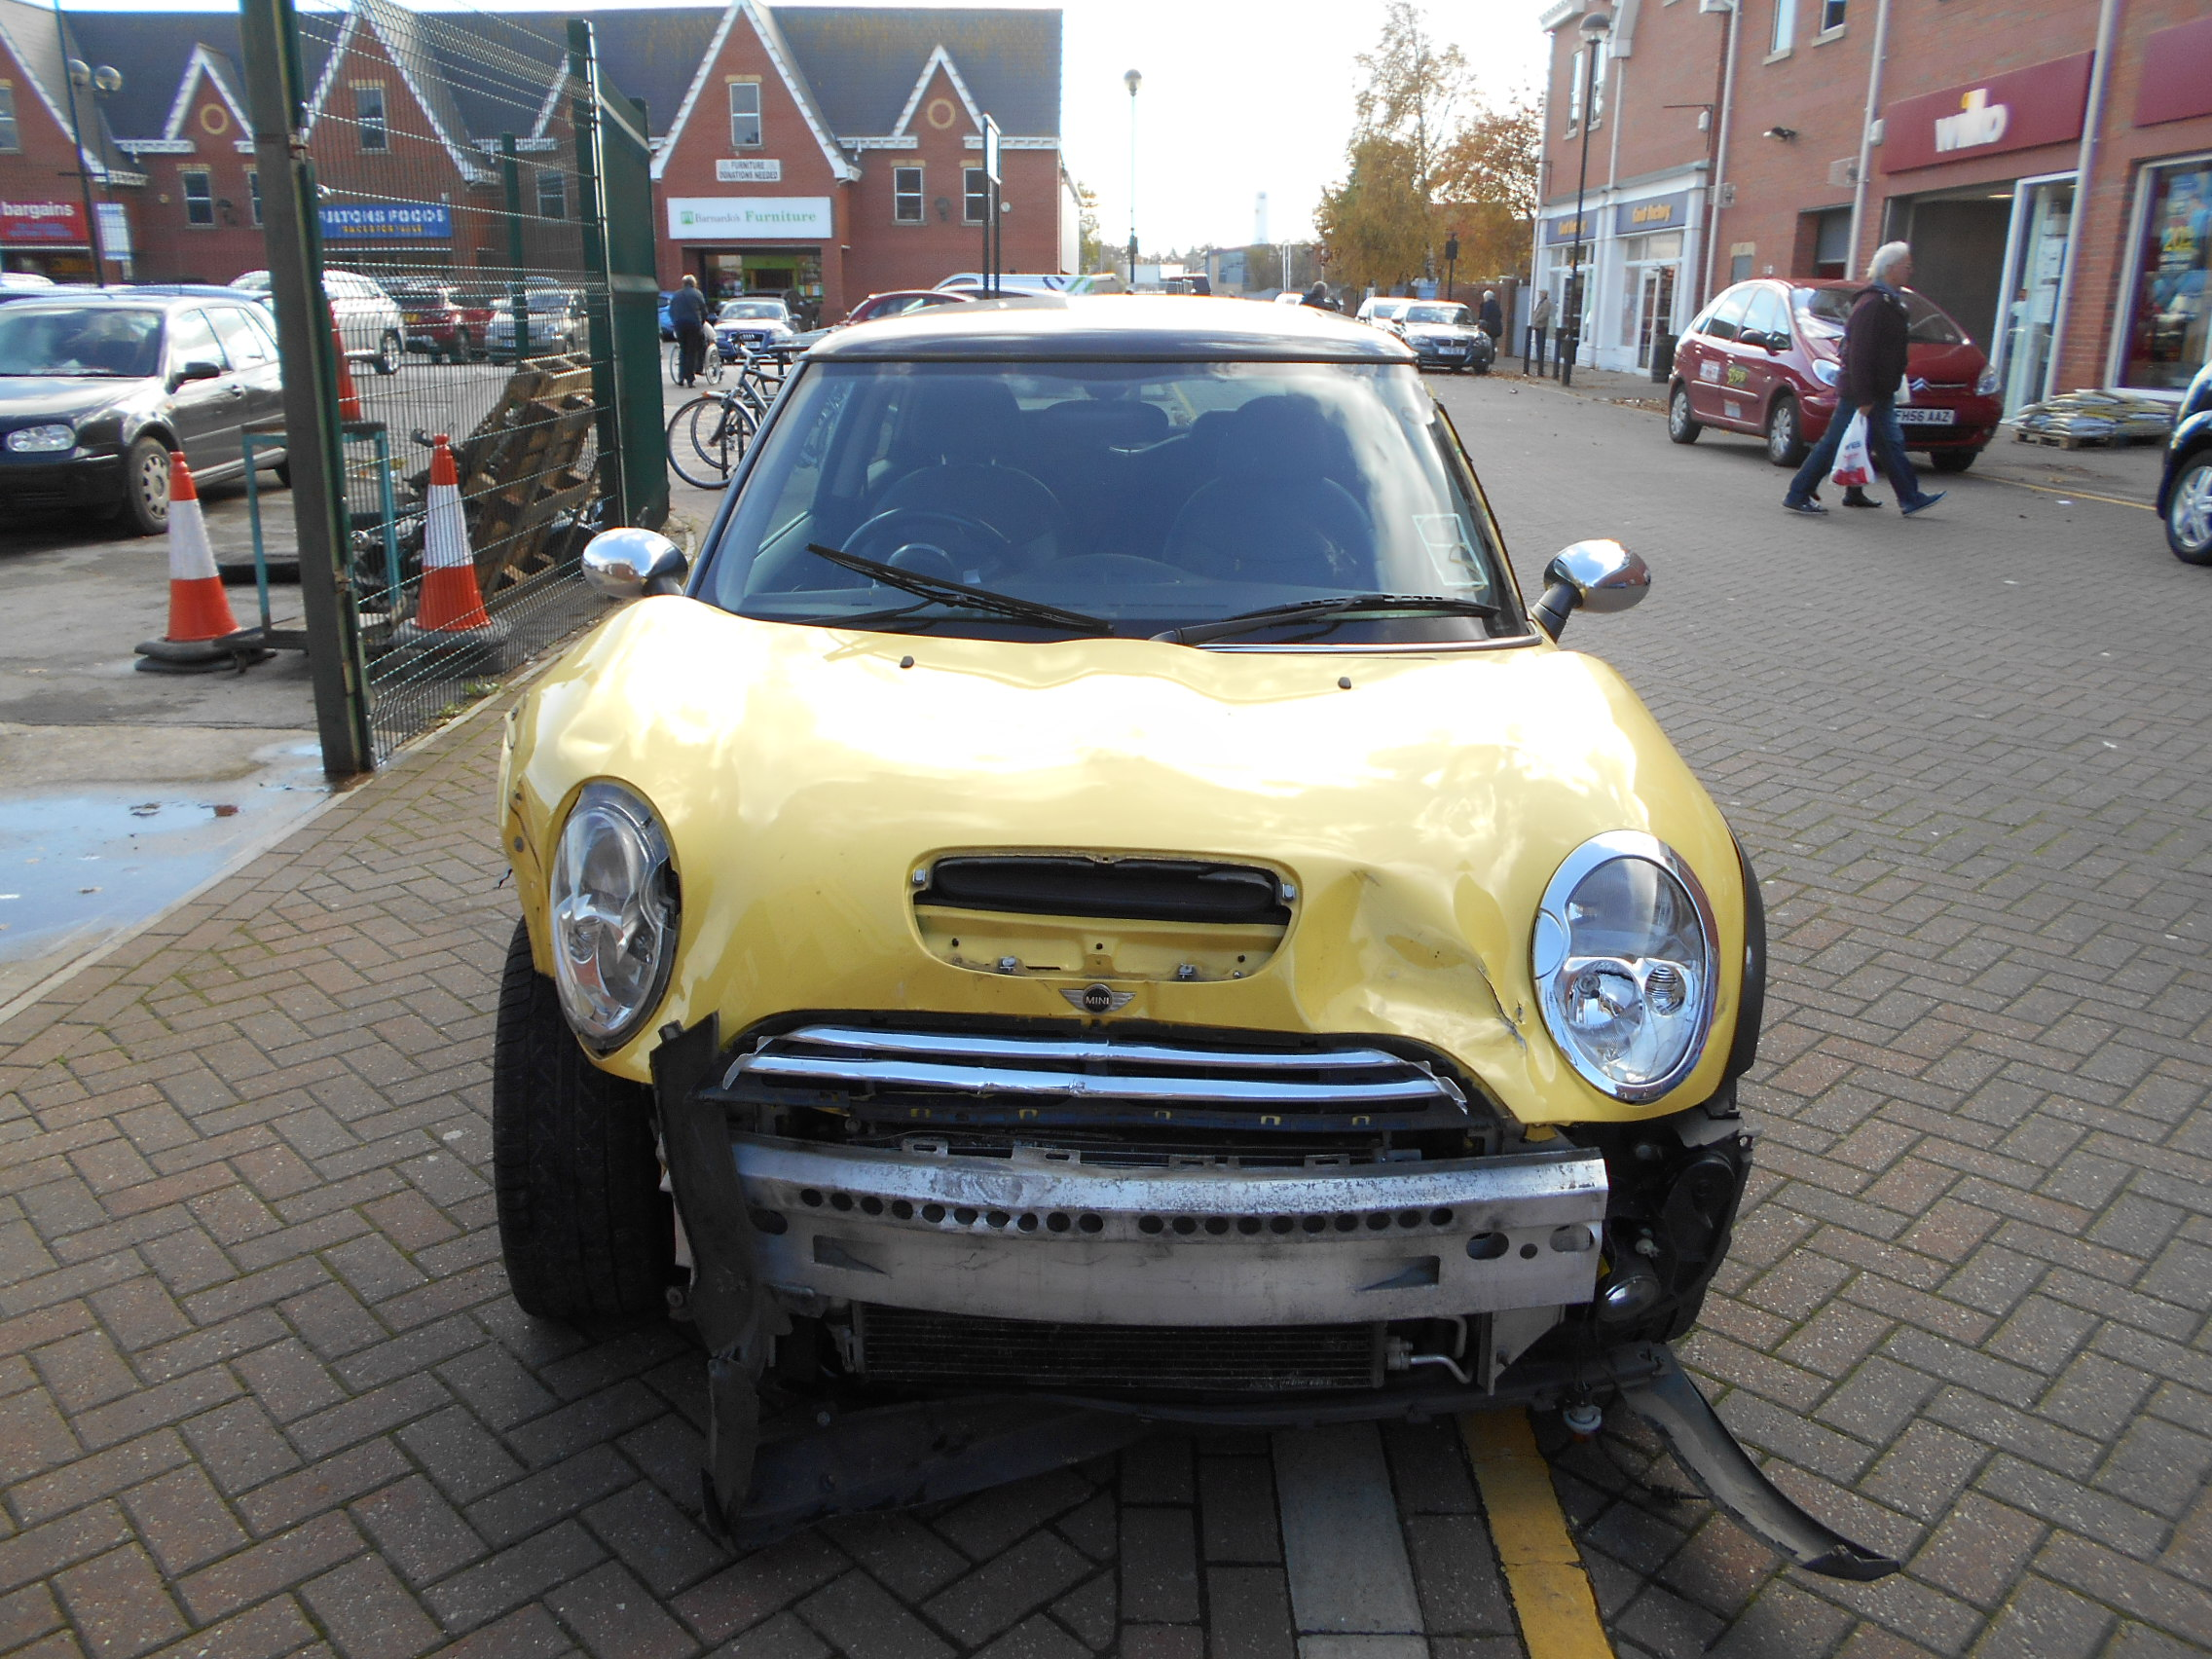 03 Liquid Yellow 1.6 BMW Mini Cooper S - 5